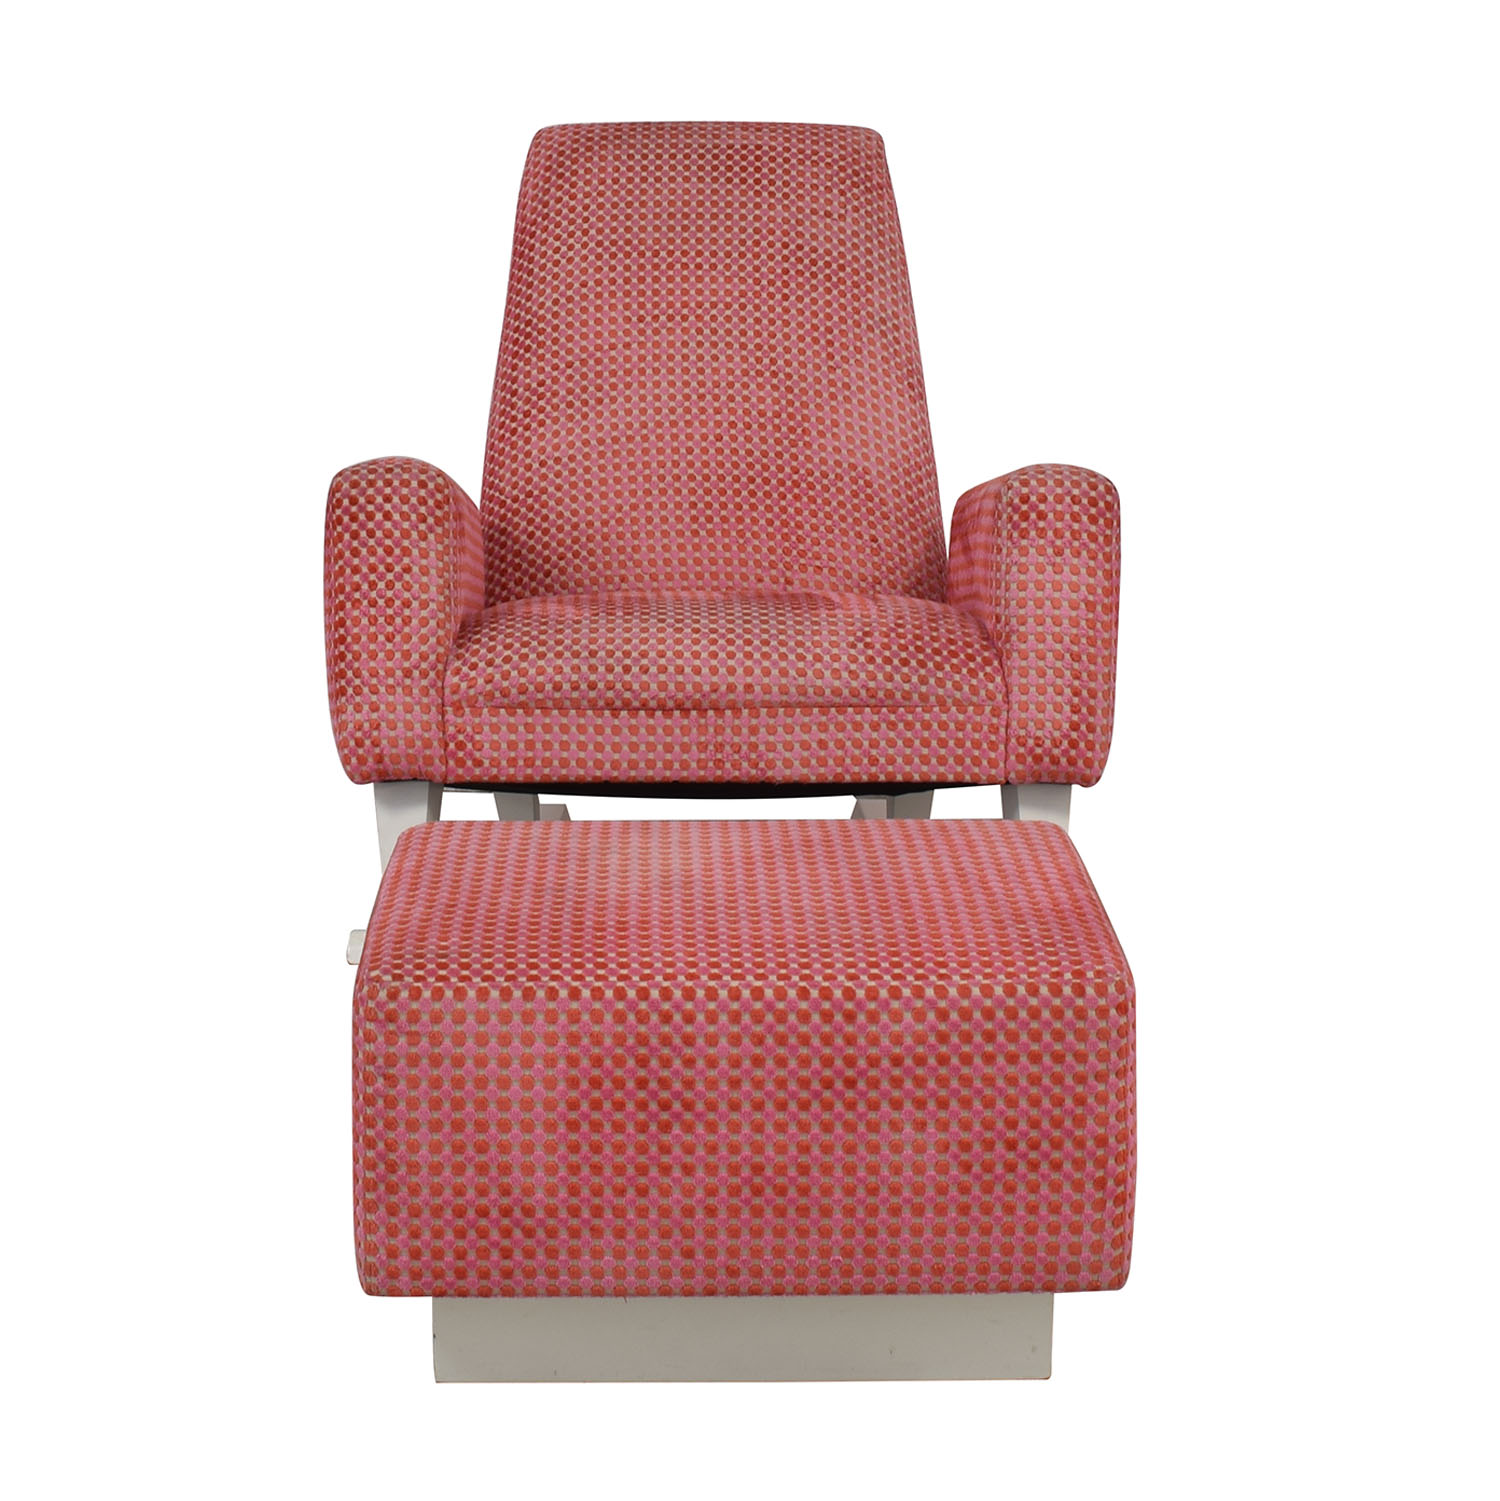 Furniture Masters Pink Chair with Ottoman sale